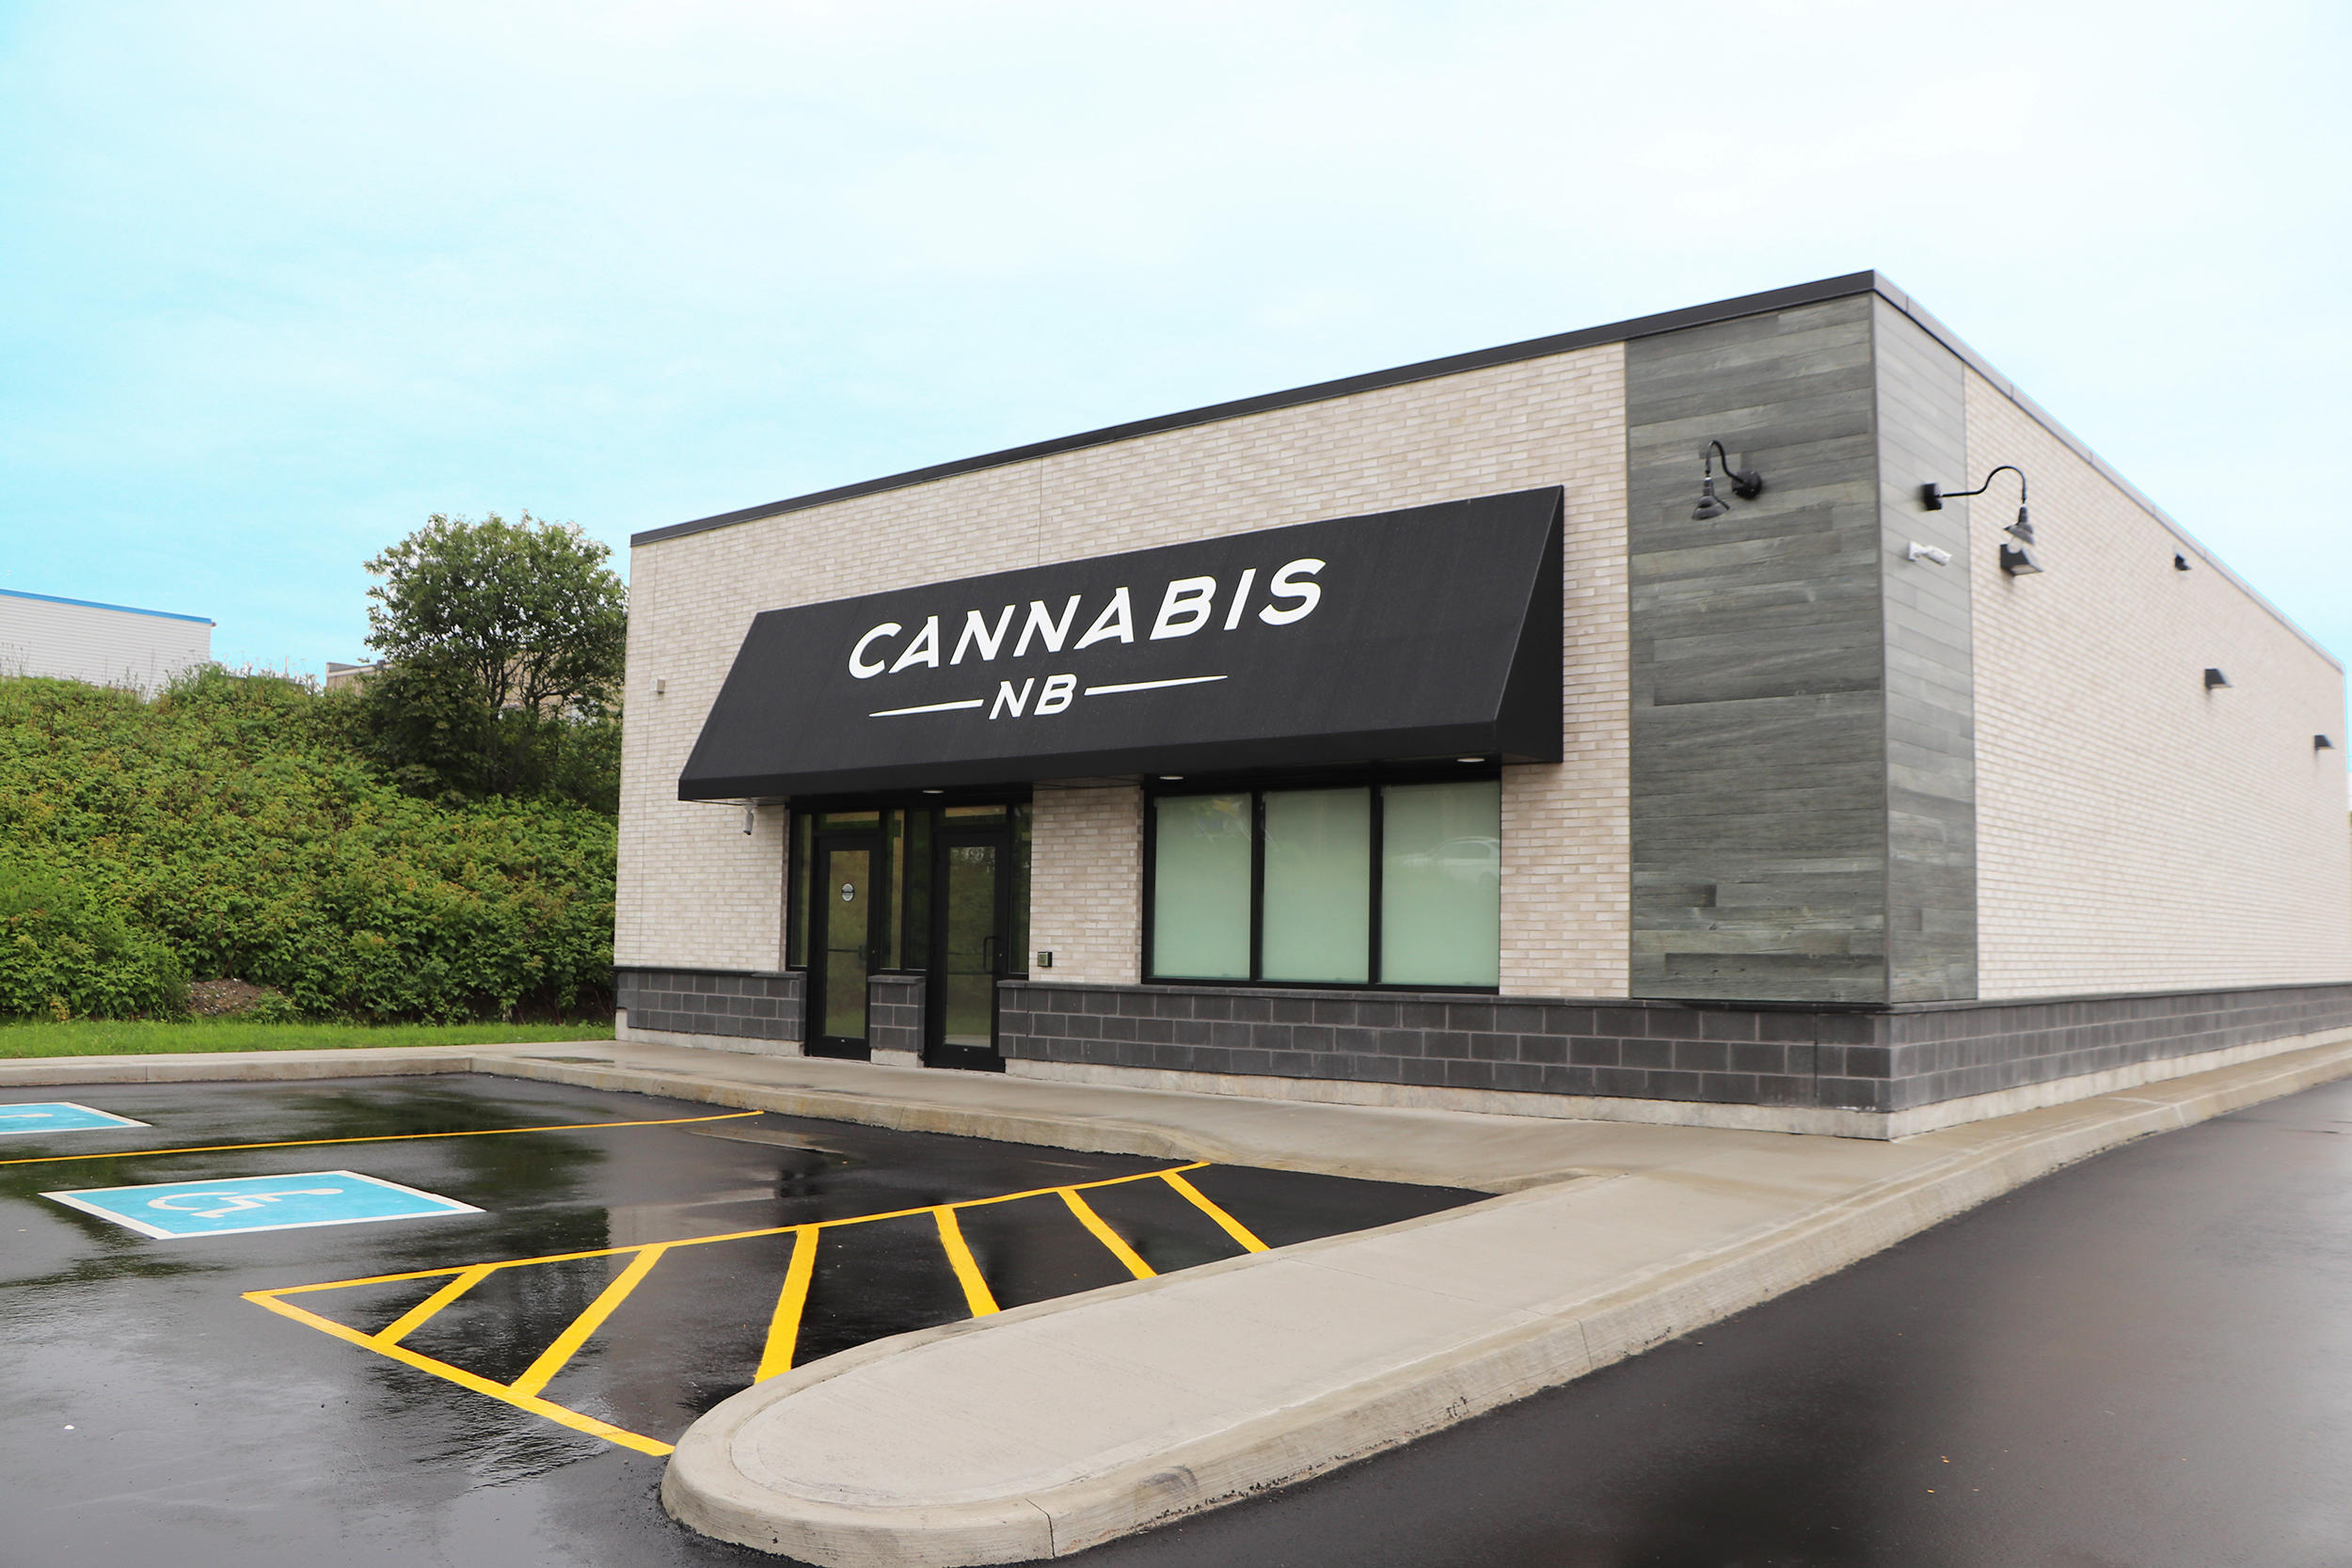 Cannabis NB in Sackville: Cannabis NB Saint John location on Lansdowne Ave